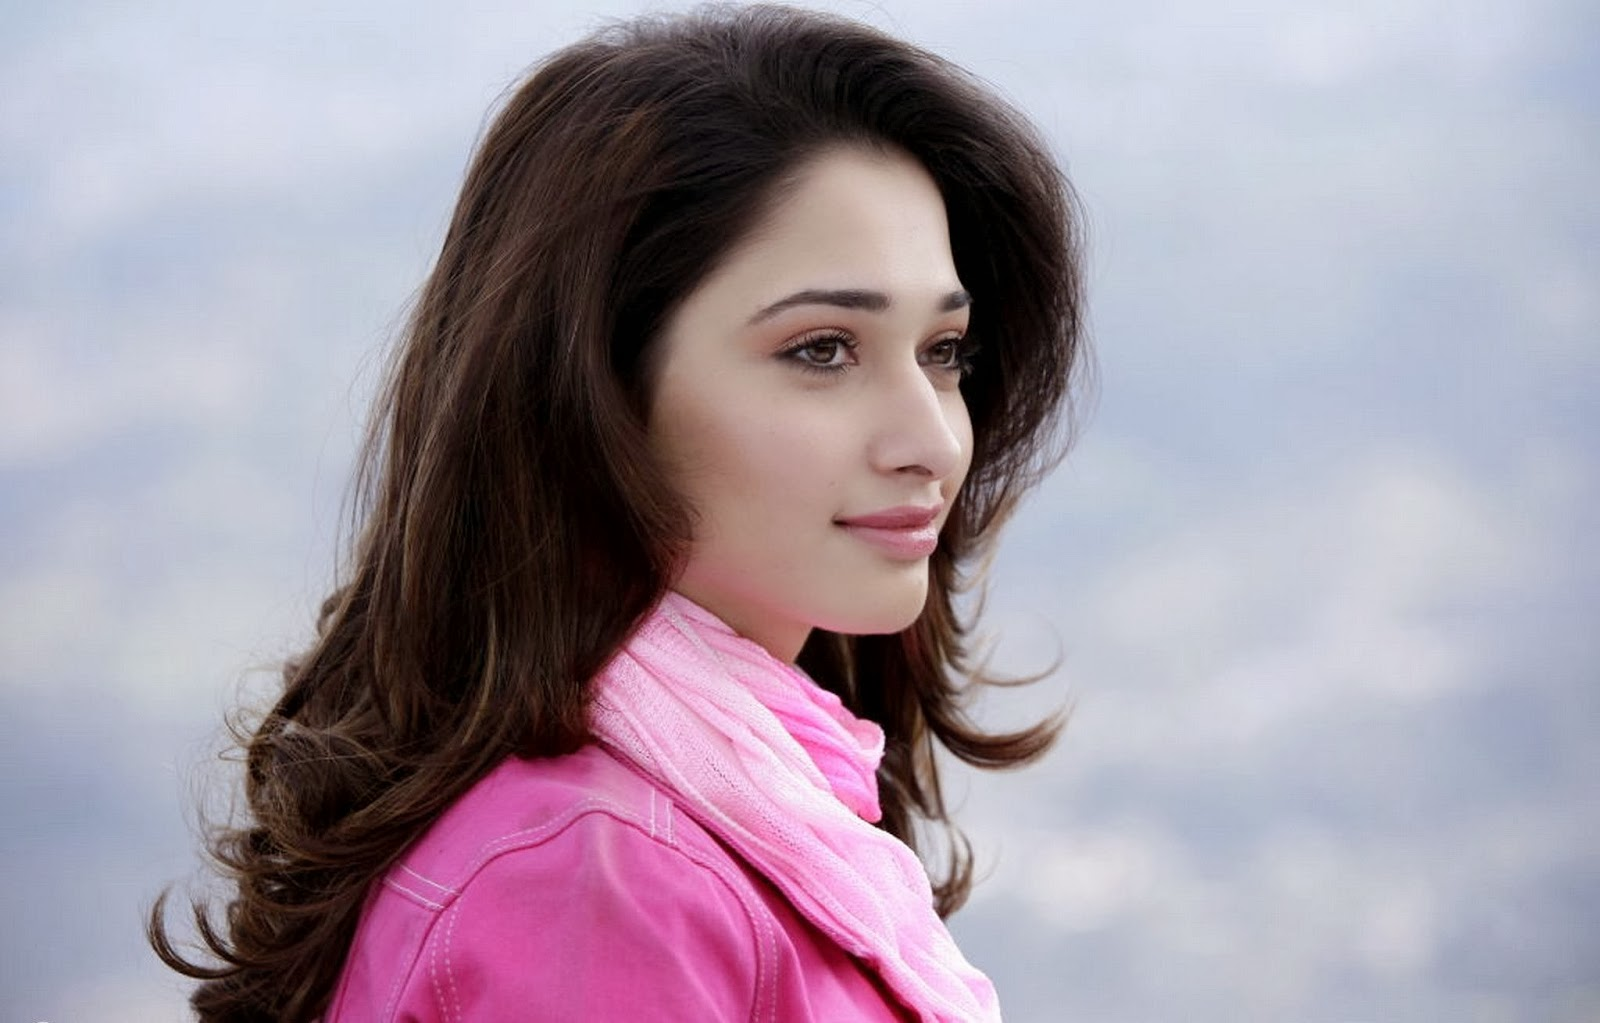 Tamannah bhatia hd wallpapers 2014 free download unique for New nice images